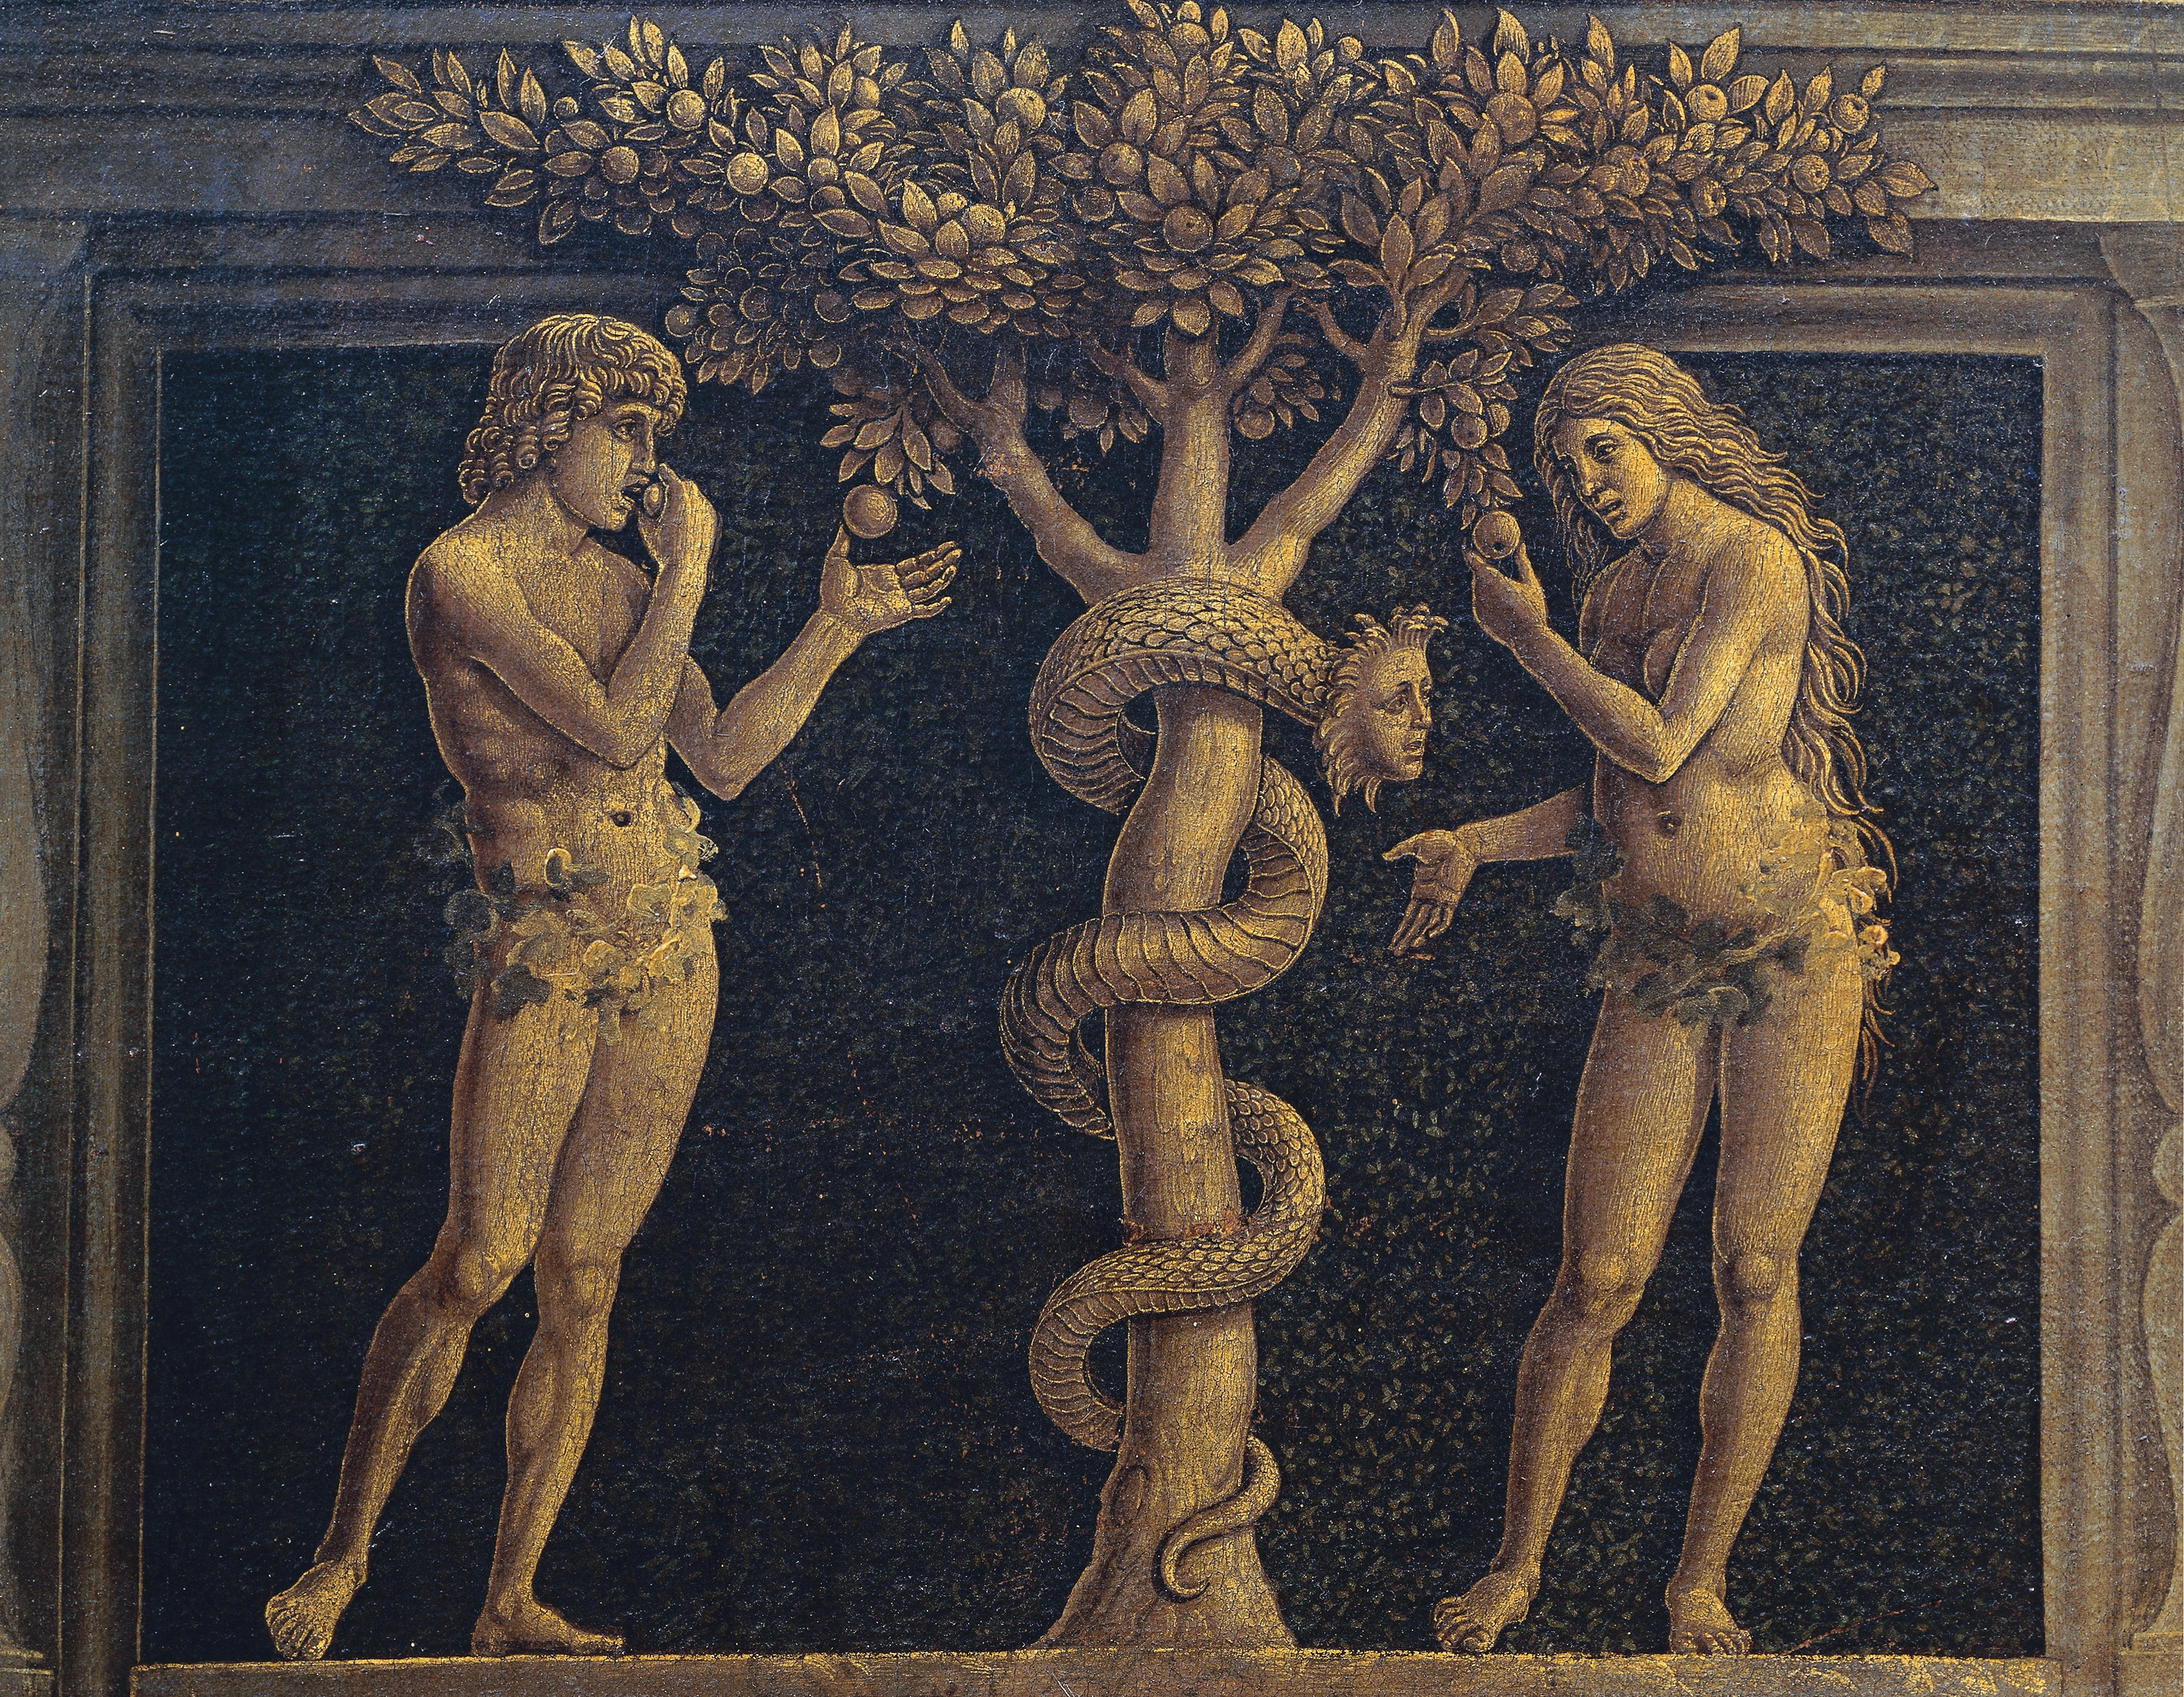 Adam and Eve committing original sin, detail from The Virgin of Victory, 1496, by Andrea Mantegna (1431-1506), tempera on canvas, 280x166 cm.